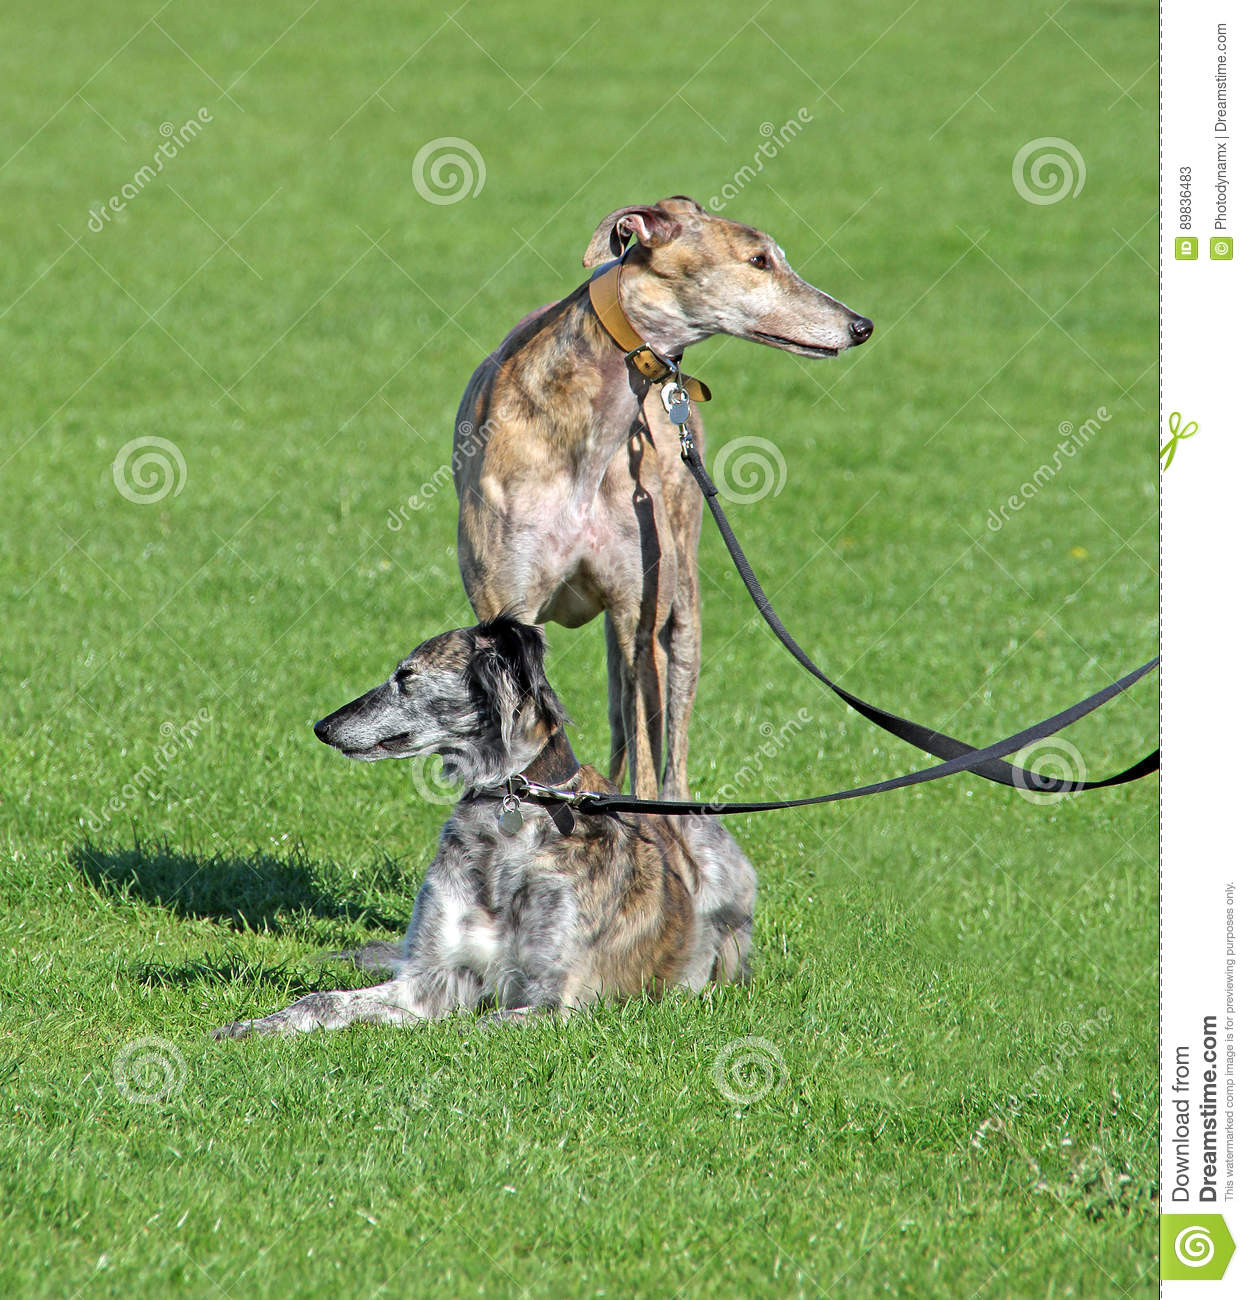 Saluki and greyhound dogs stock image  Image of teamwork - 89836483